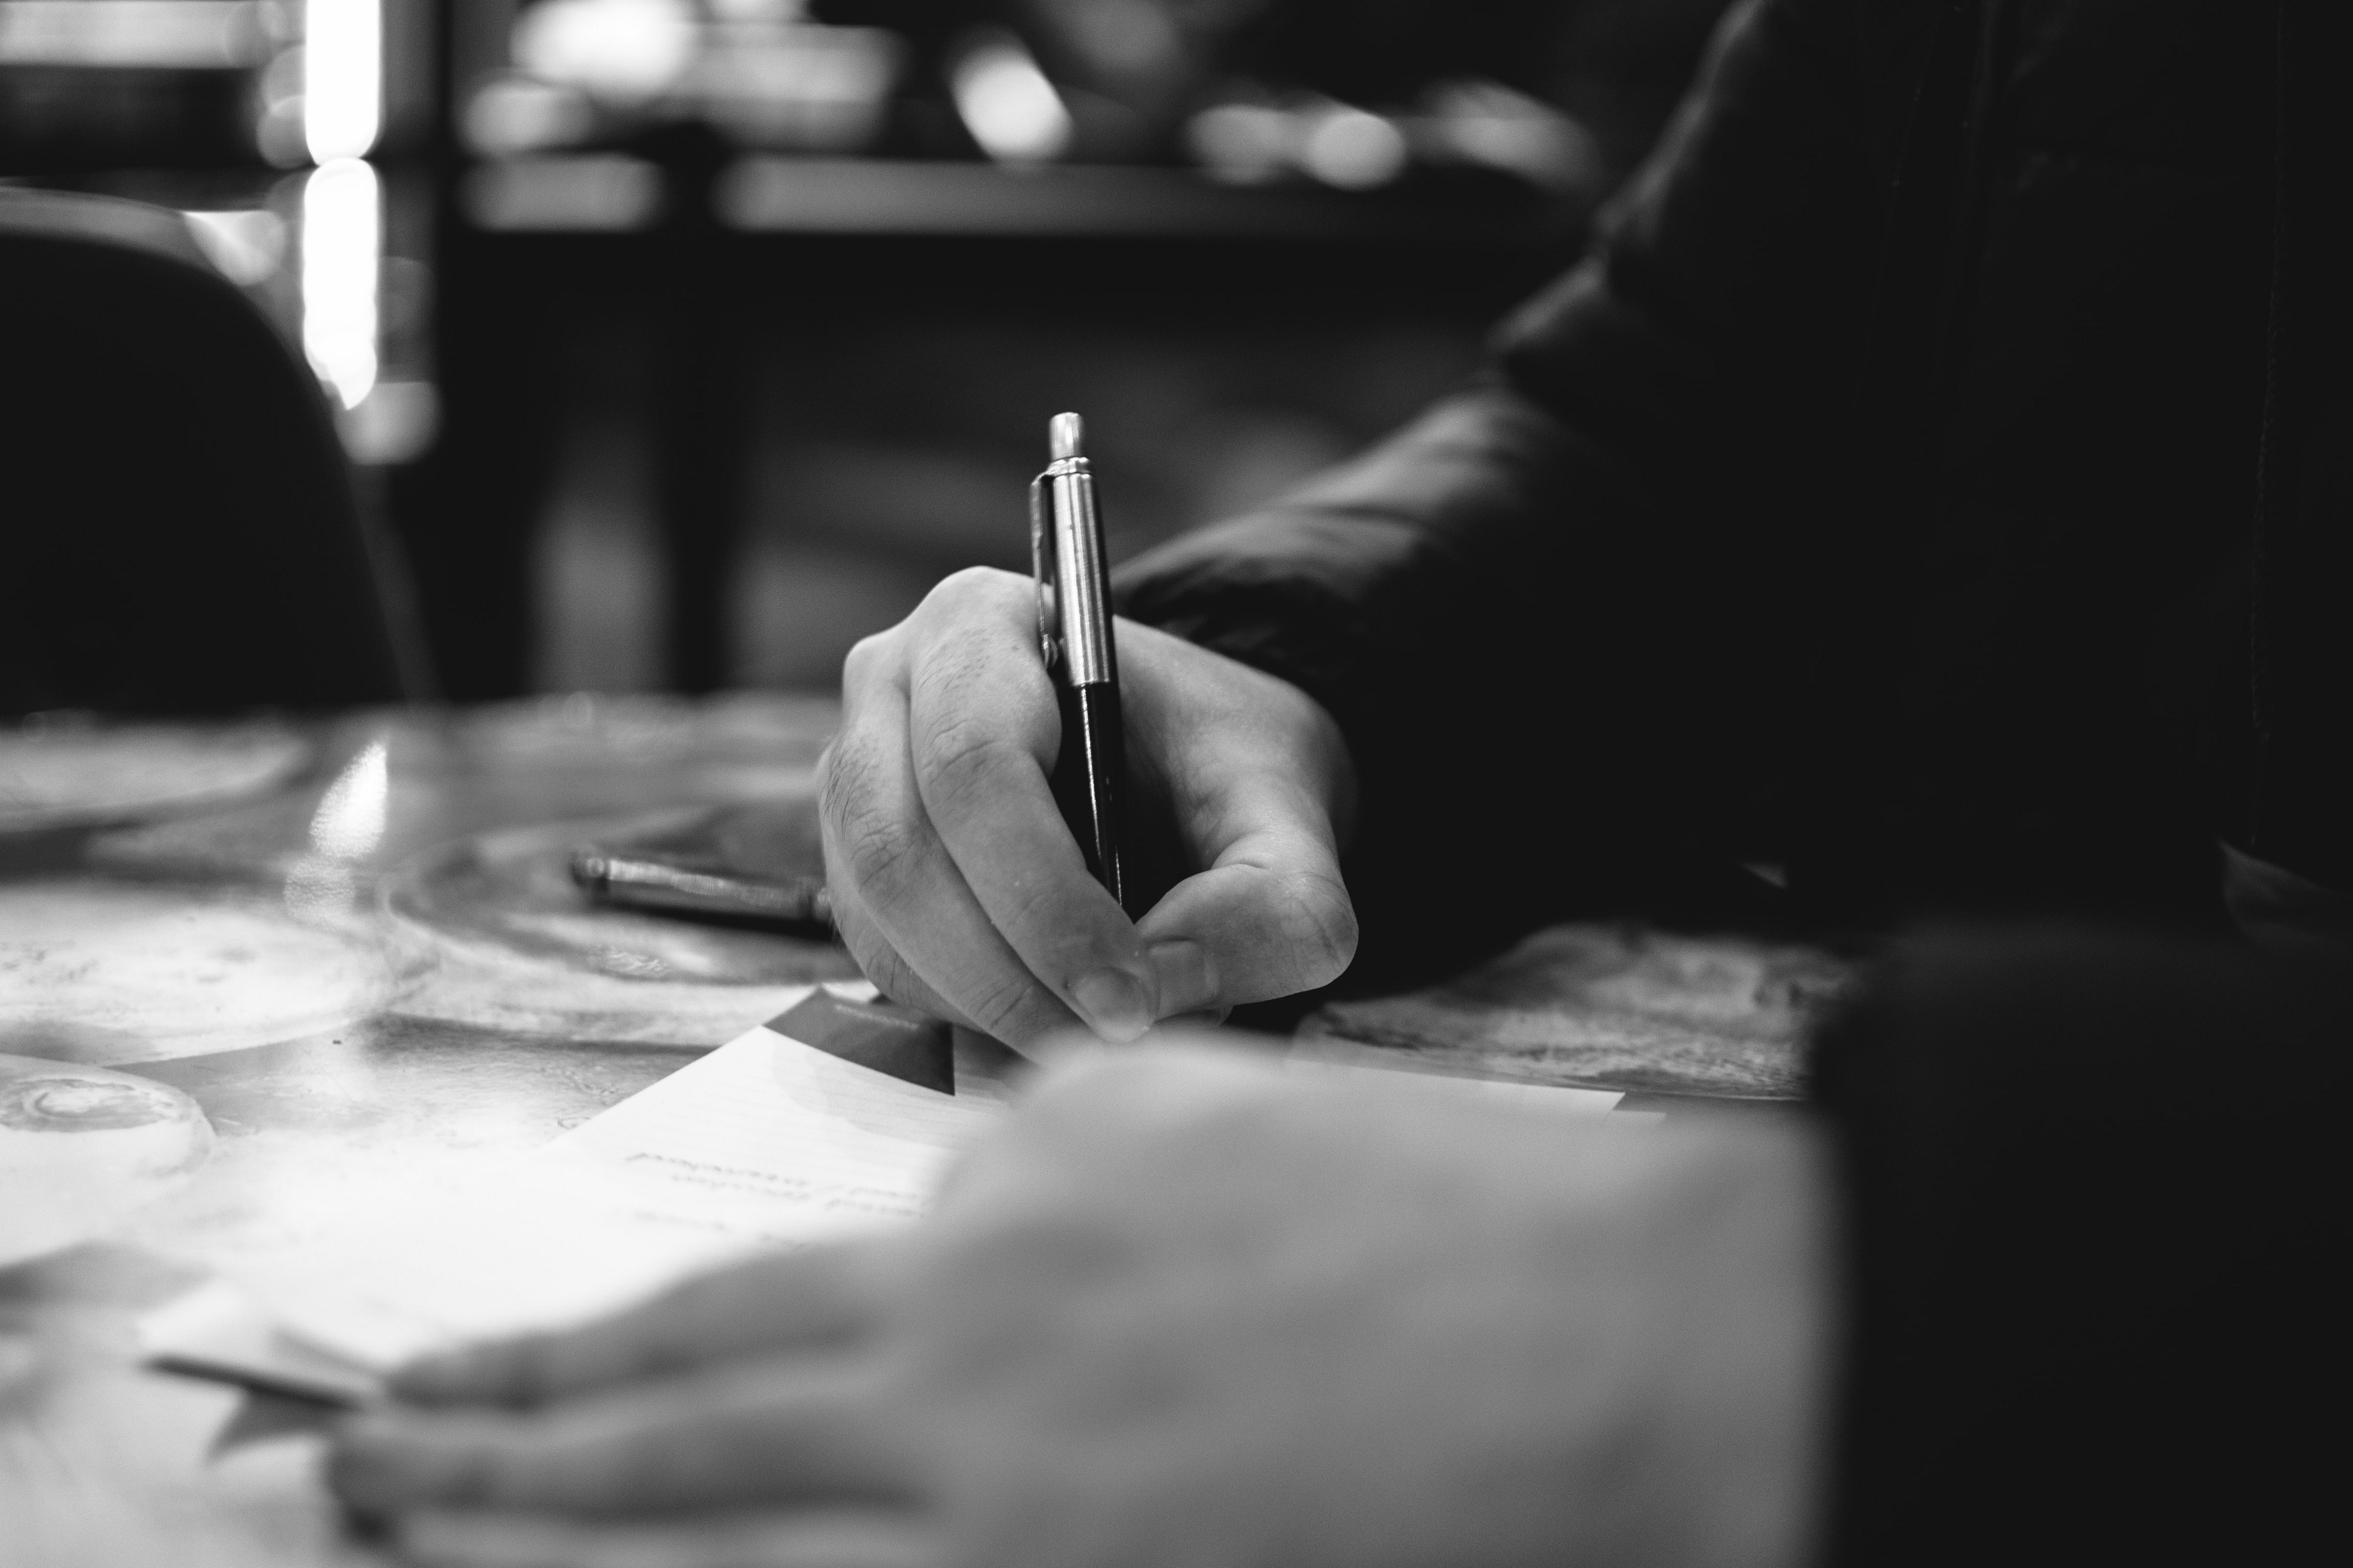 Close up of a man's hand using a pen to write notes down on a piece of paper, resting on a table